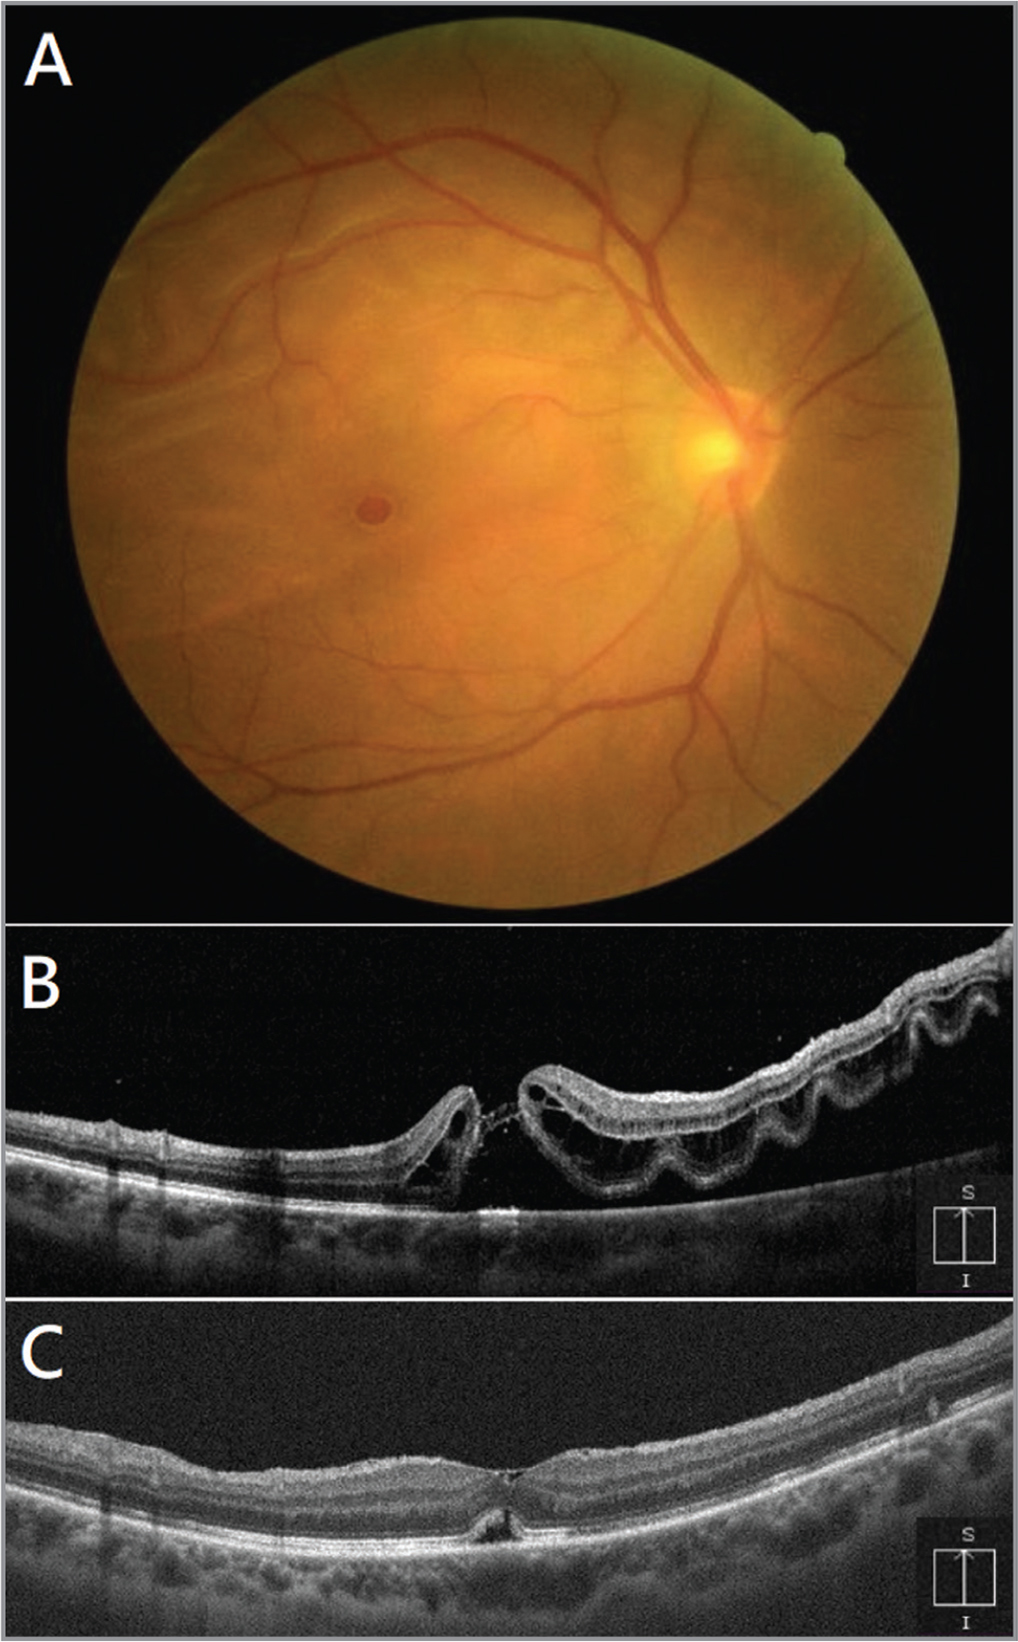 (A) Color fundus photography showed retinal detachment involving the superior macula and a macular hole (MH). (B) Preoperative optical coherence tomography (OCT) demonstrated subretinal fluid (SRF) and retinal folding involving superior macula, and a nearly full-thickness MH with the elongated outer segments connecting at the fovea; no vitreomacular traction was noted. (C) Postoperative OCT showed that the MH was sealed with a residual SRF pocket at the fovea.